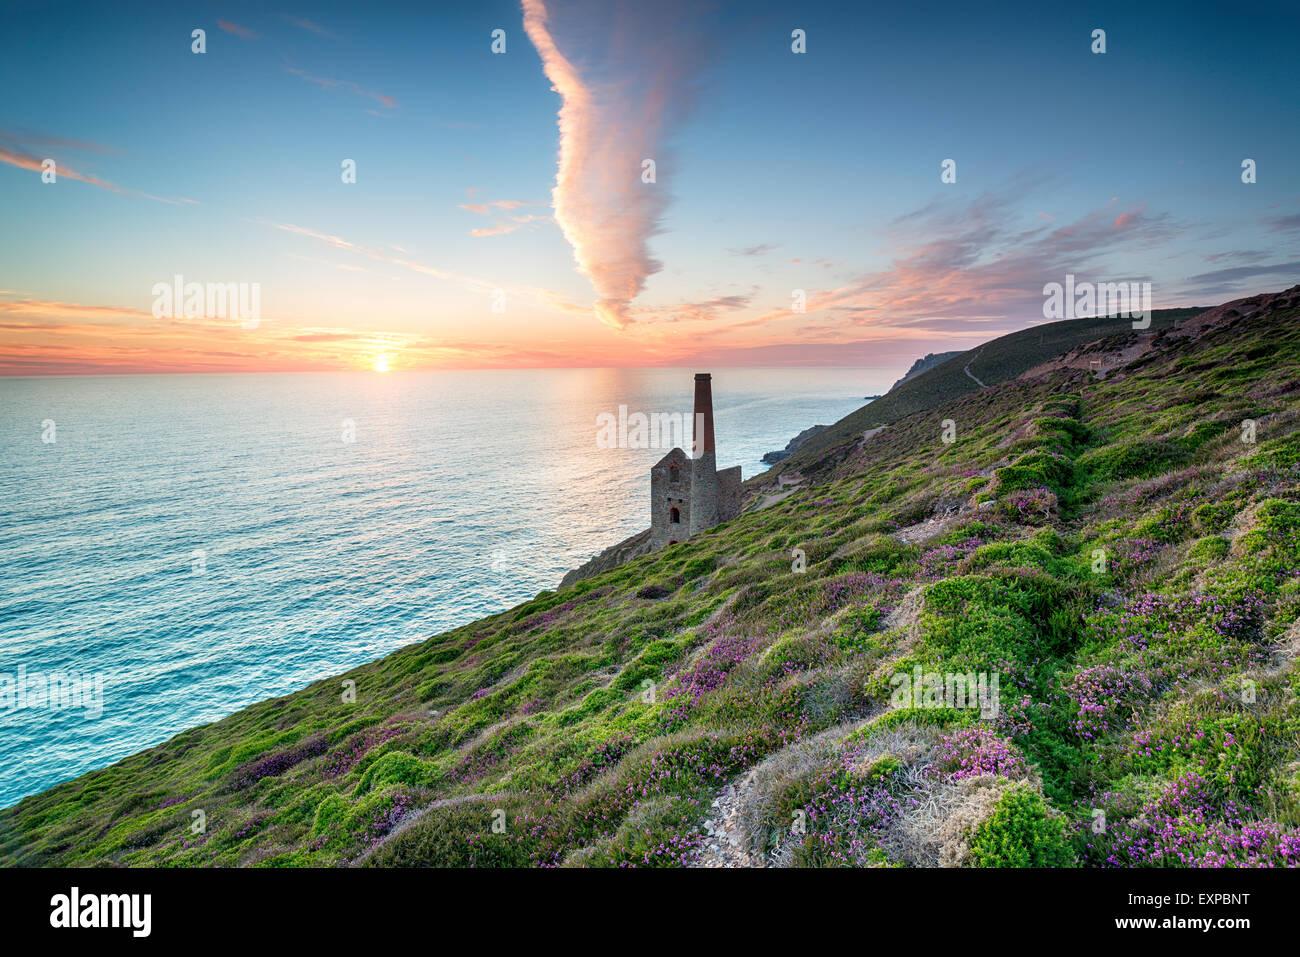 Sunset on the Cornwall coast at St Agnes looking out over the Towanroath engine house - Stock Image